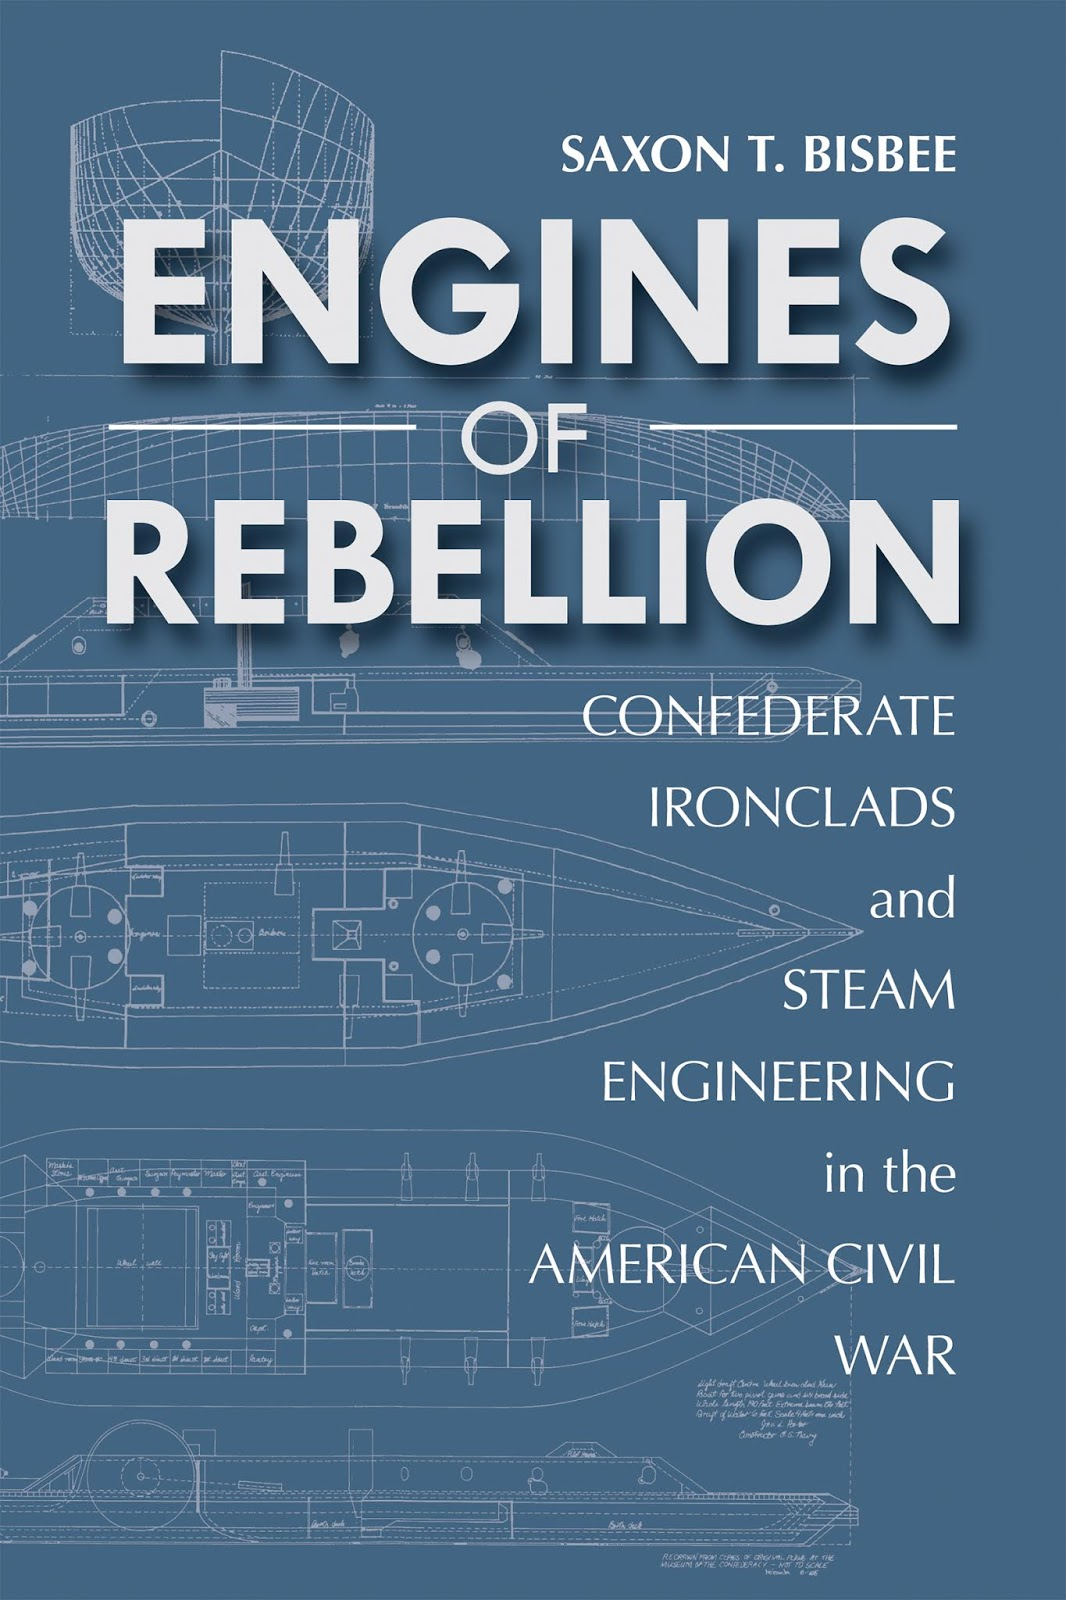 it seems like a long time since an interesting technology related civil war book arrived on the doorstep and this one appears to be something right up my